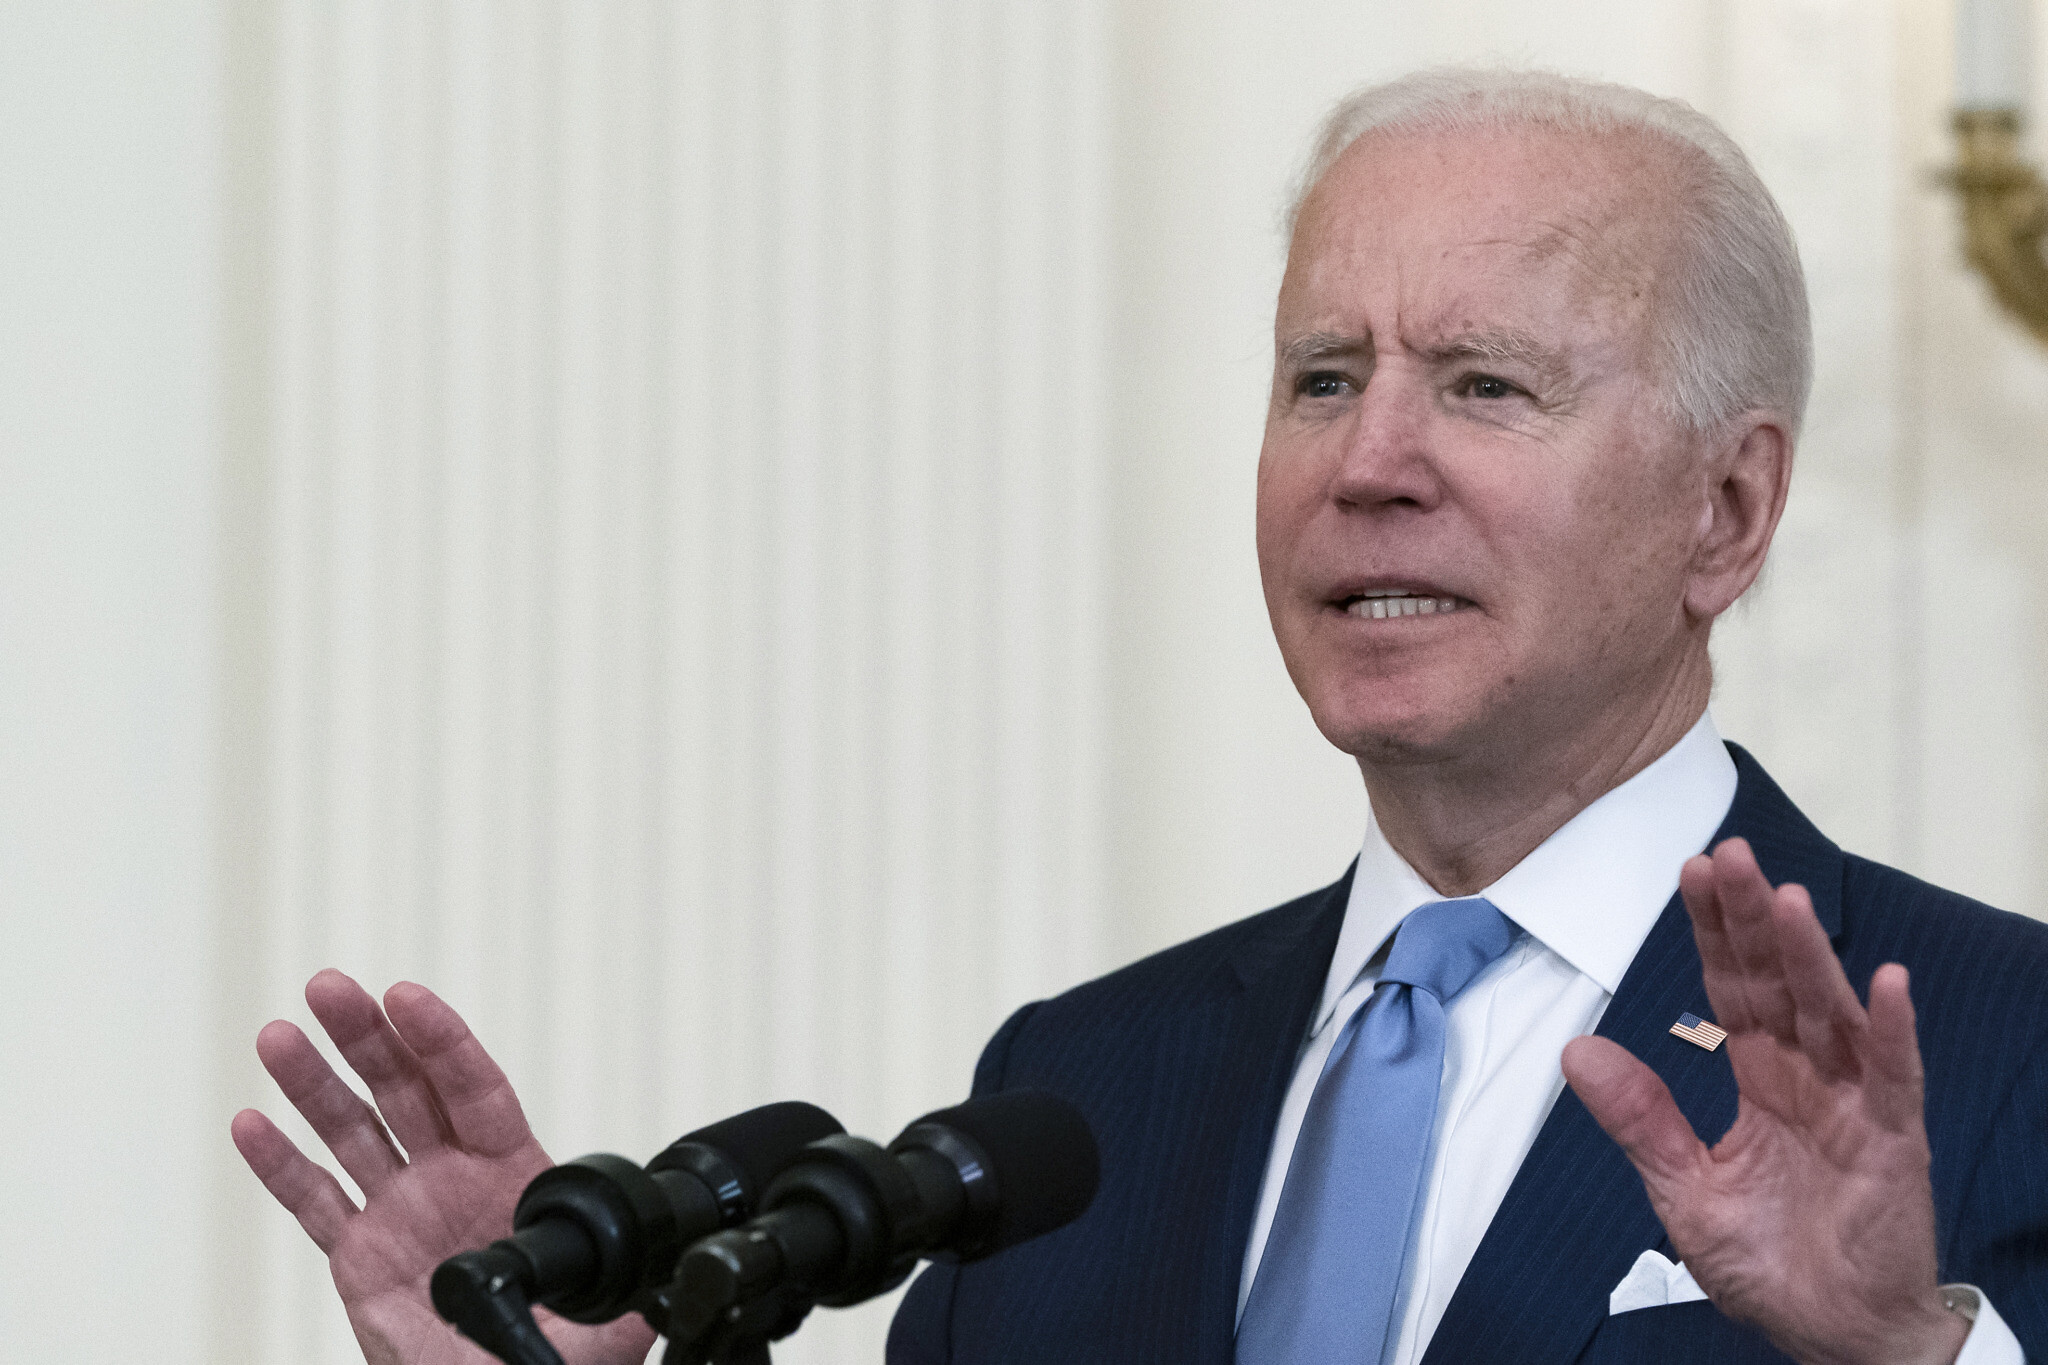 81 Of Young Americans Back Biden S Response To Gaza Violence Poll Finds The Times Of Israel